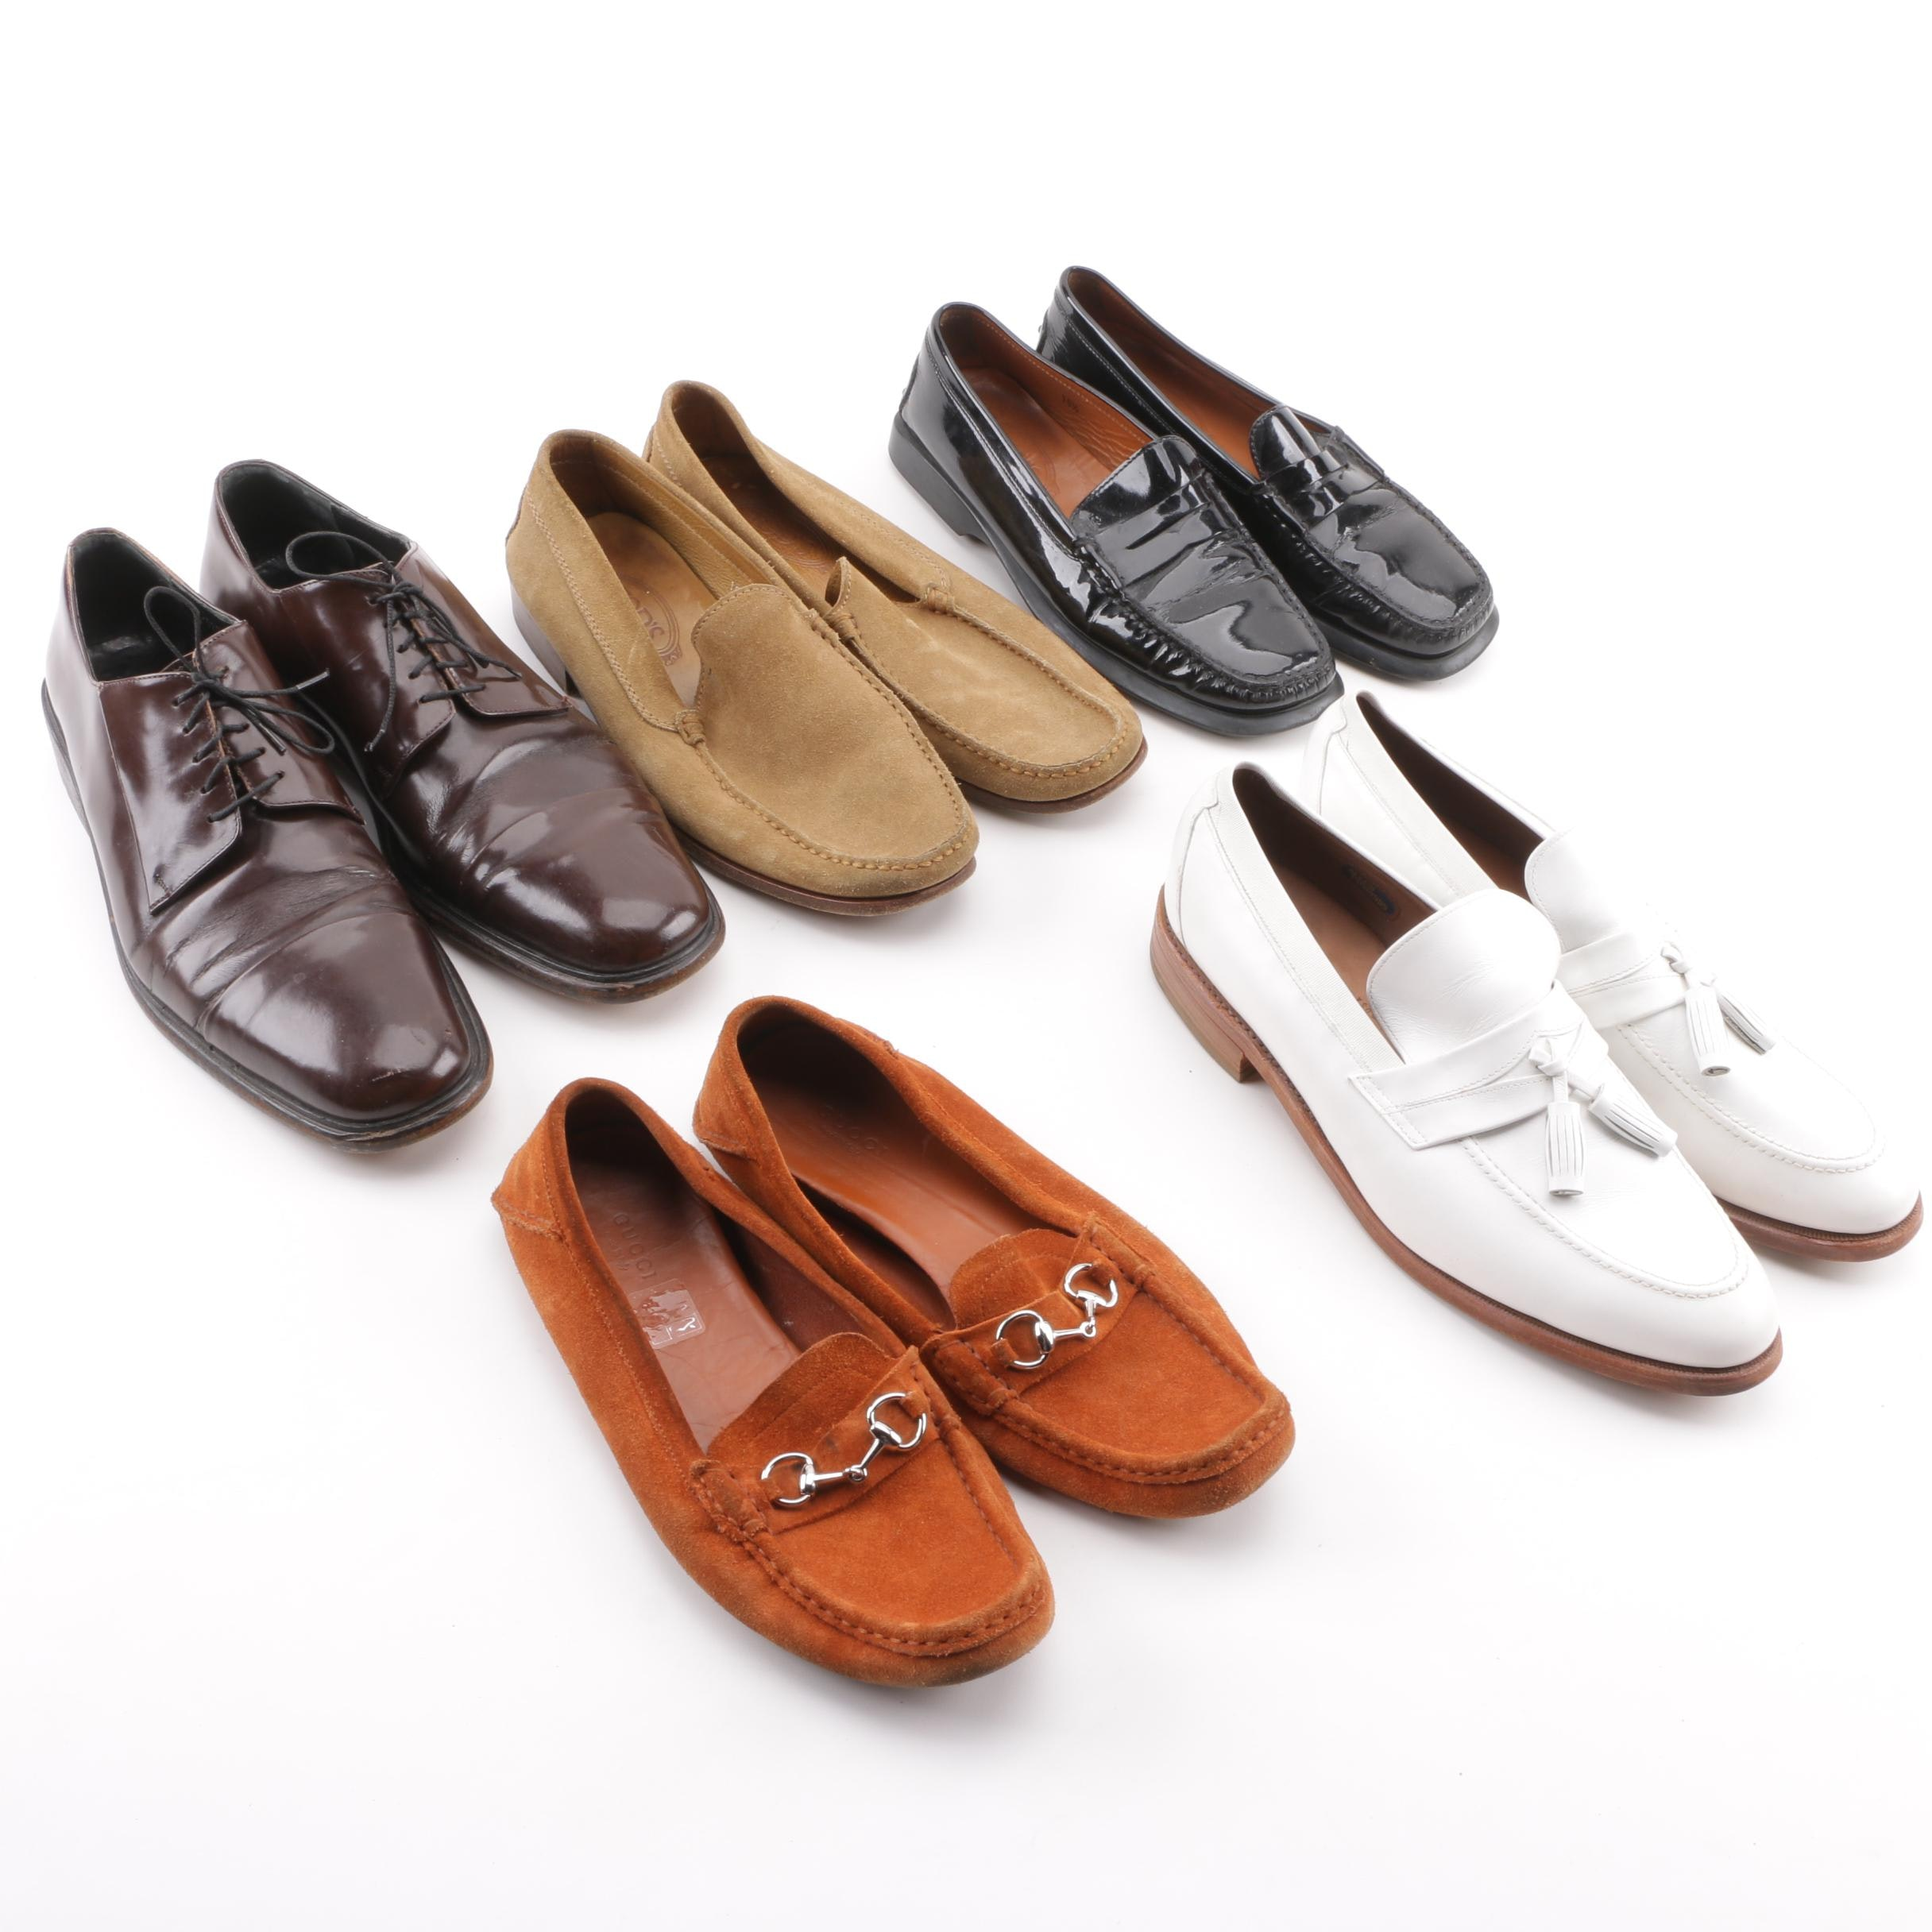 Men's Casual and Dress Shoes including Gucci, Tod's and Allen Edmonds